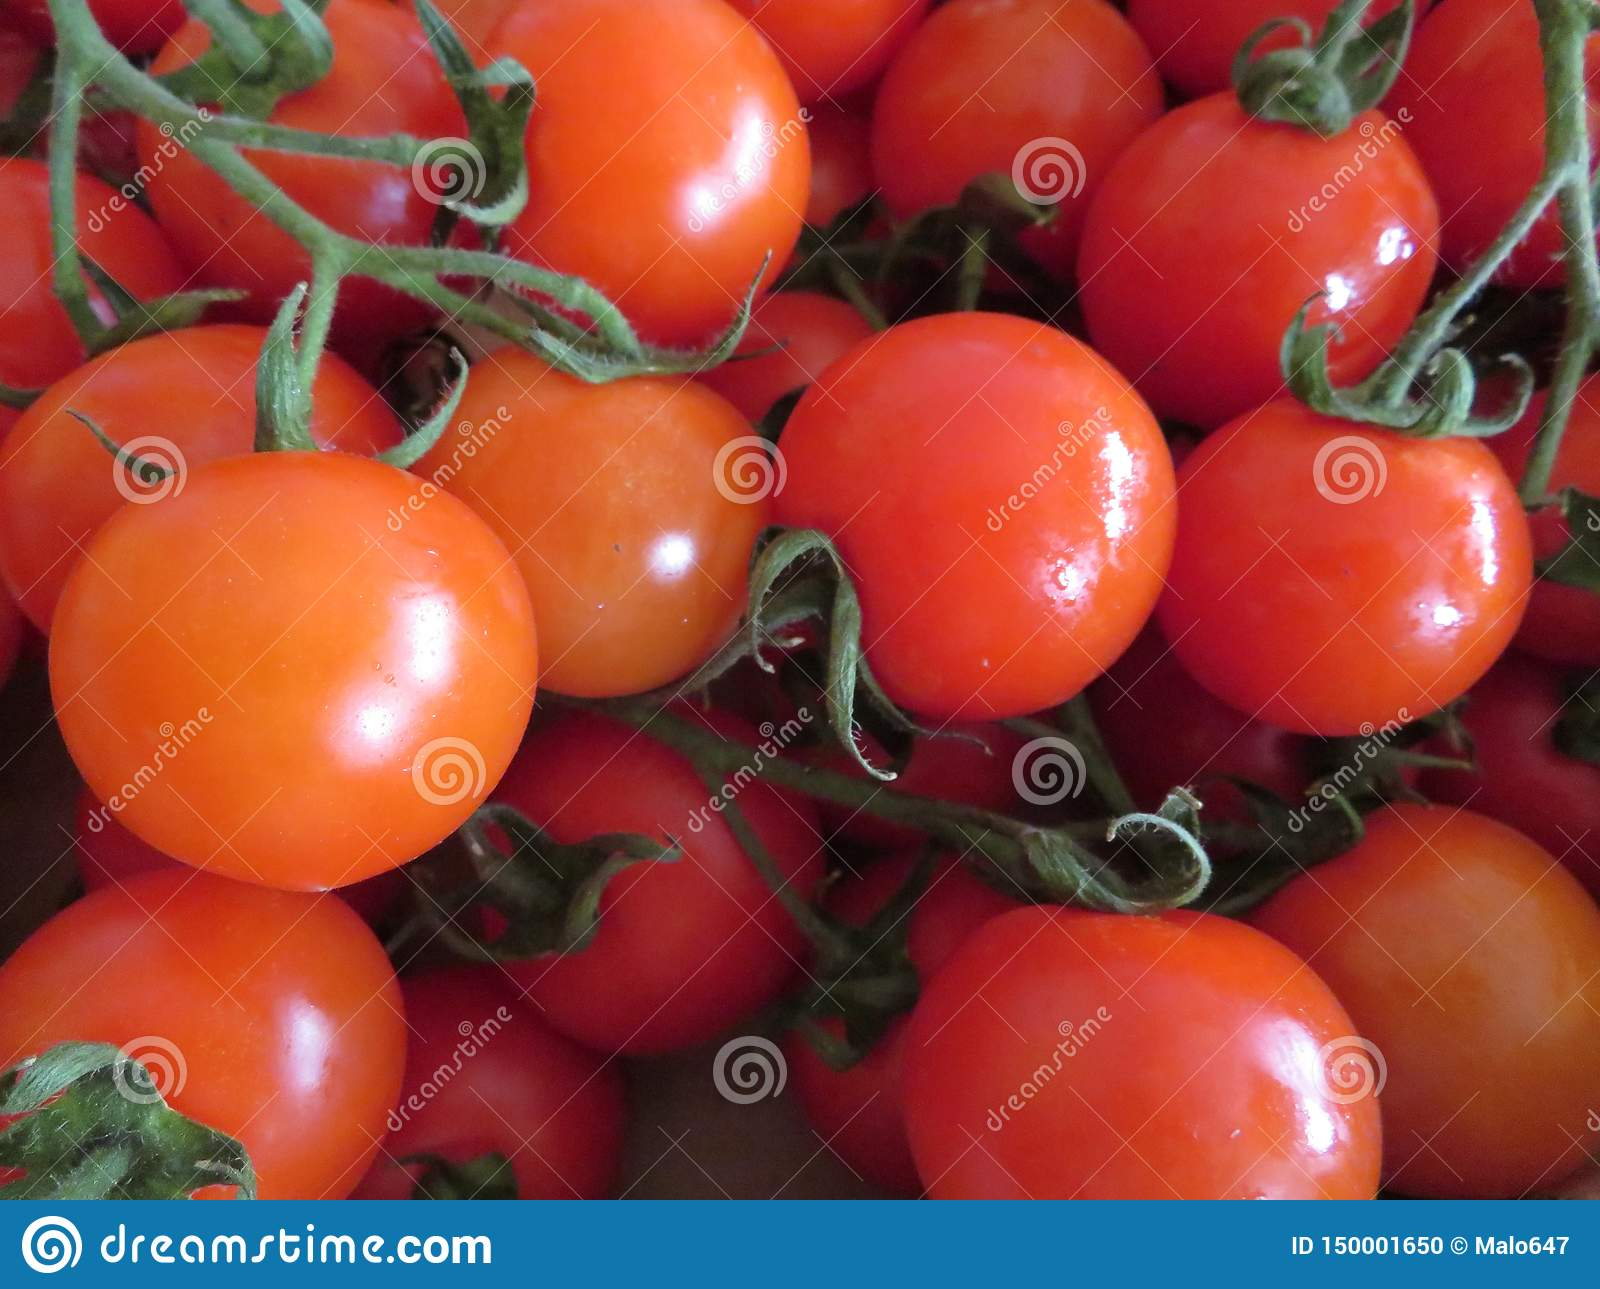 Delicious tomatoes with a good looks and incredible color